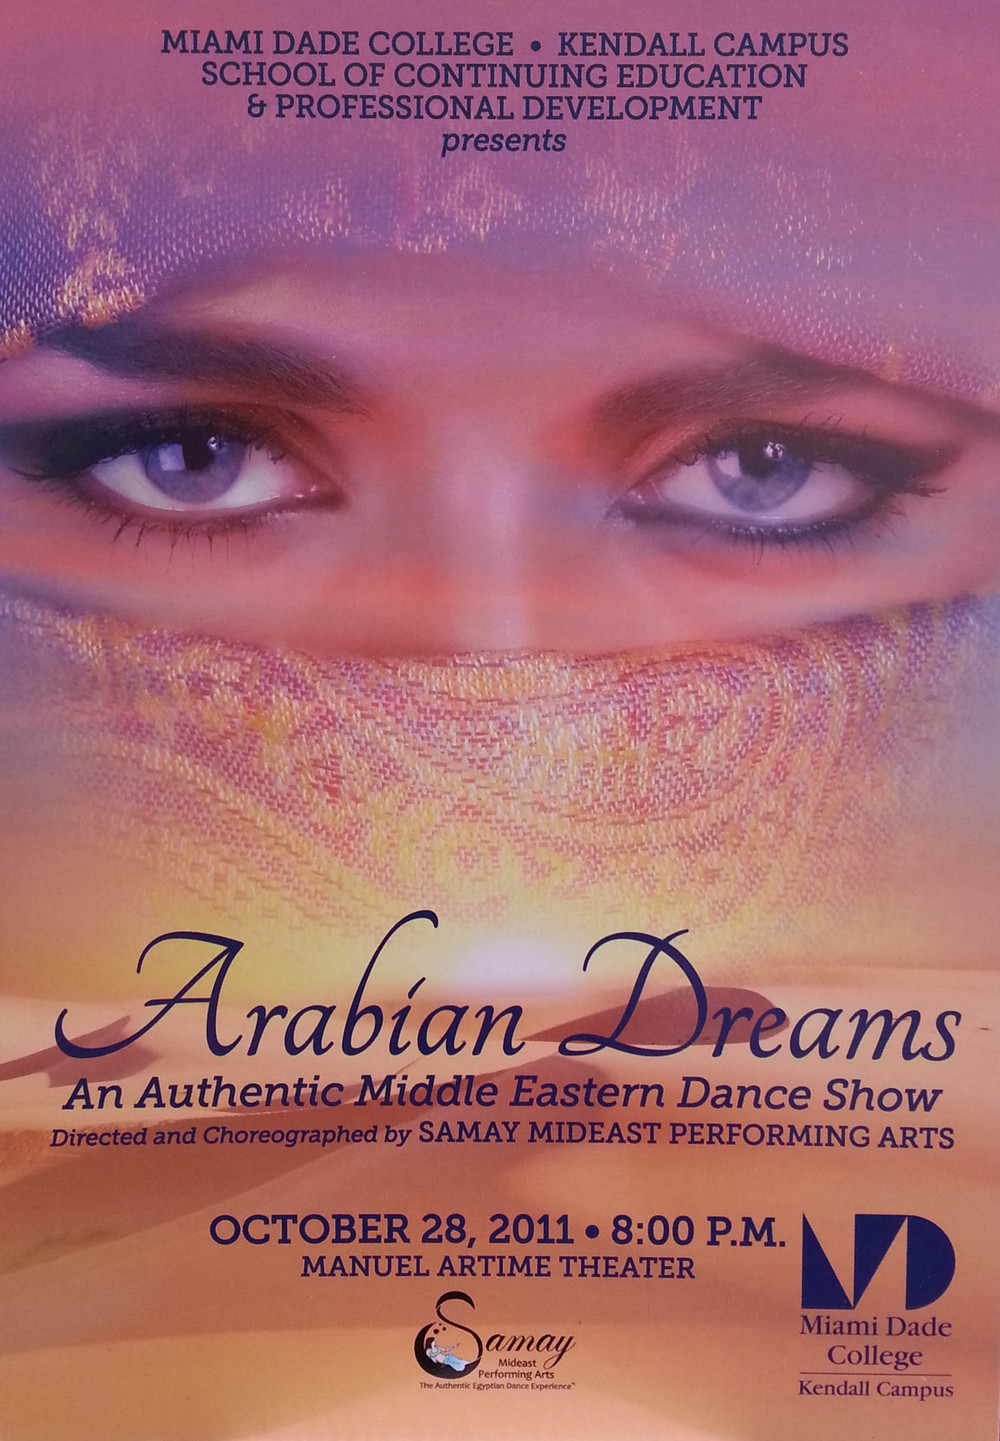 Arabian Dreams